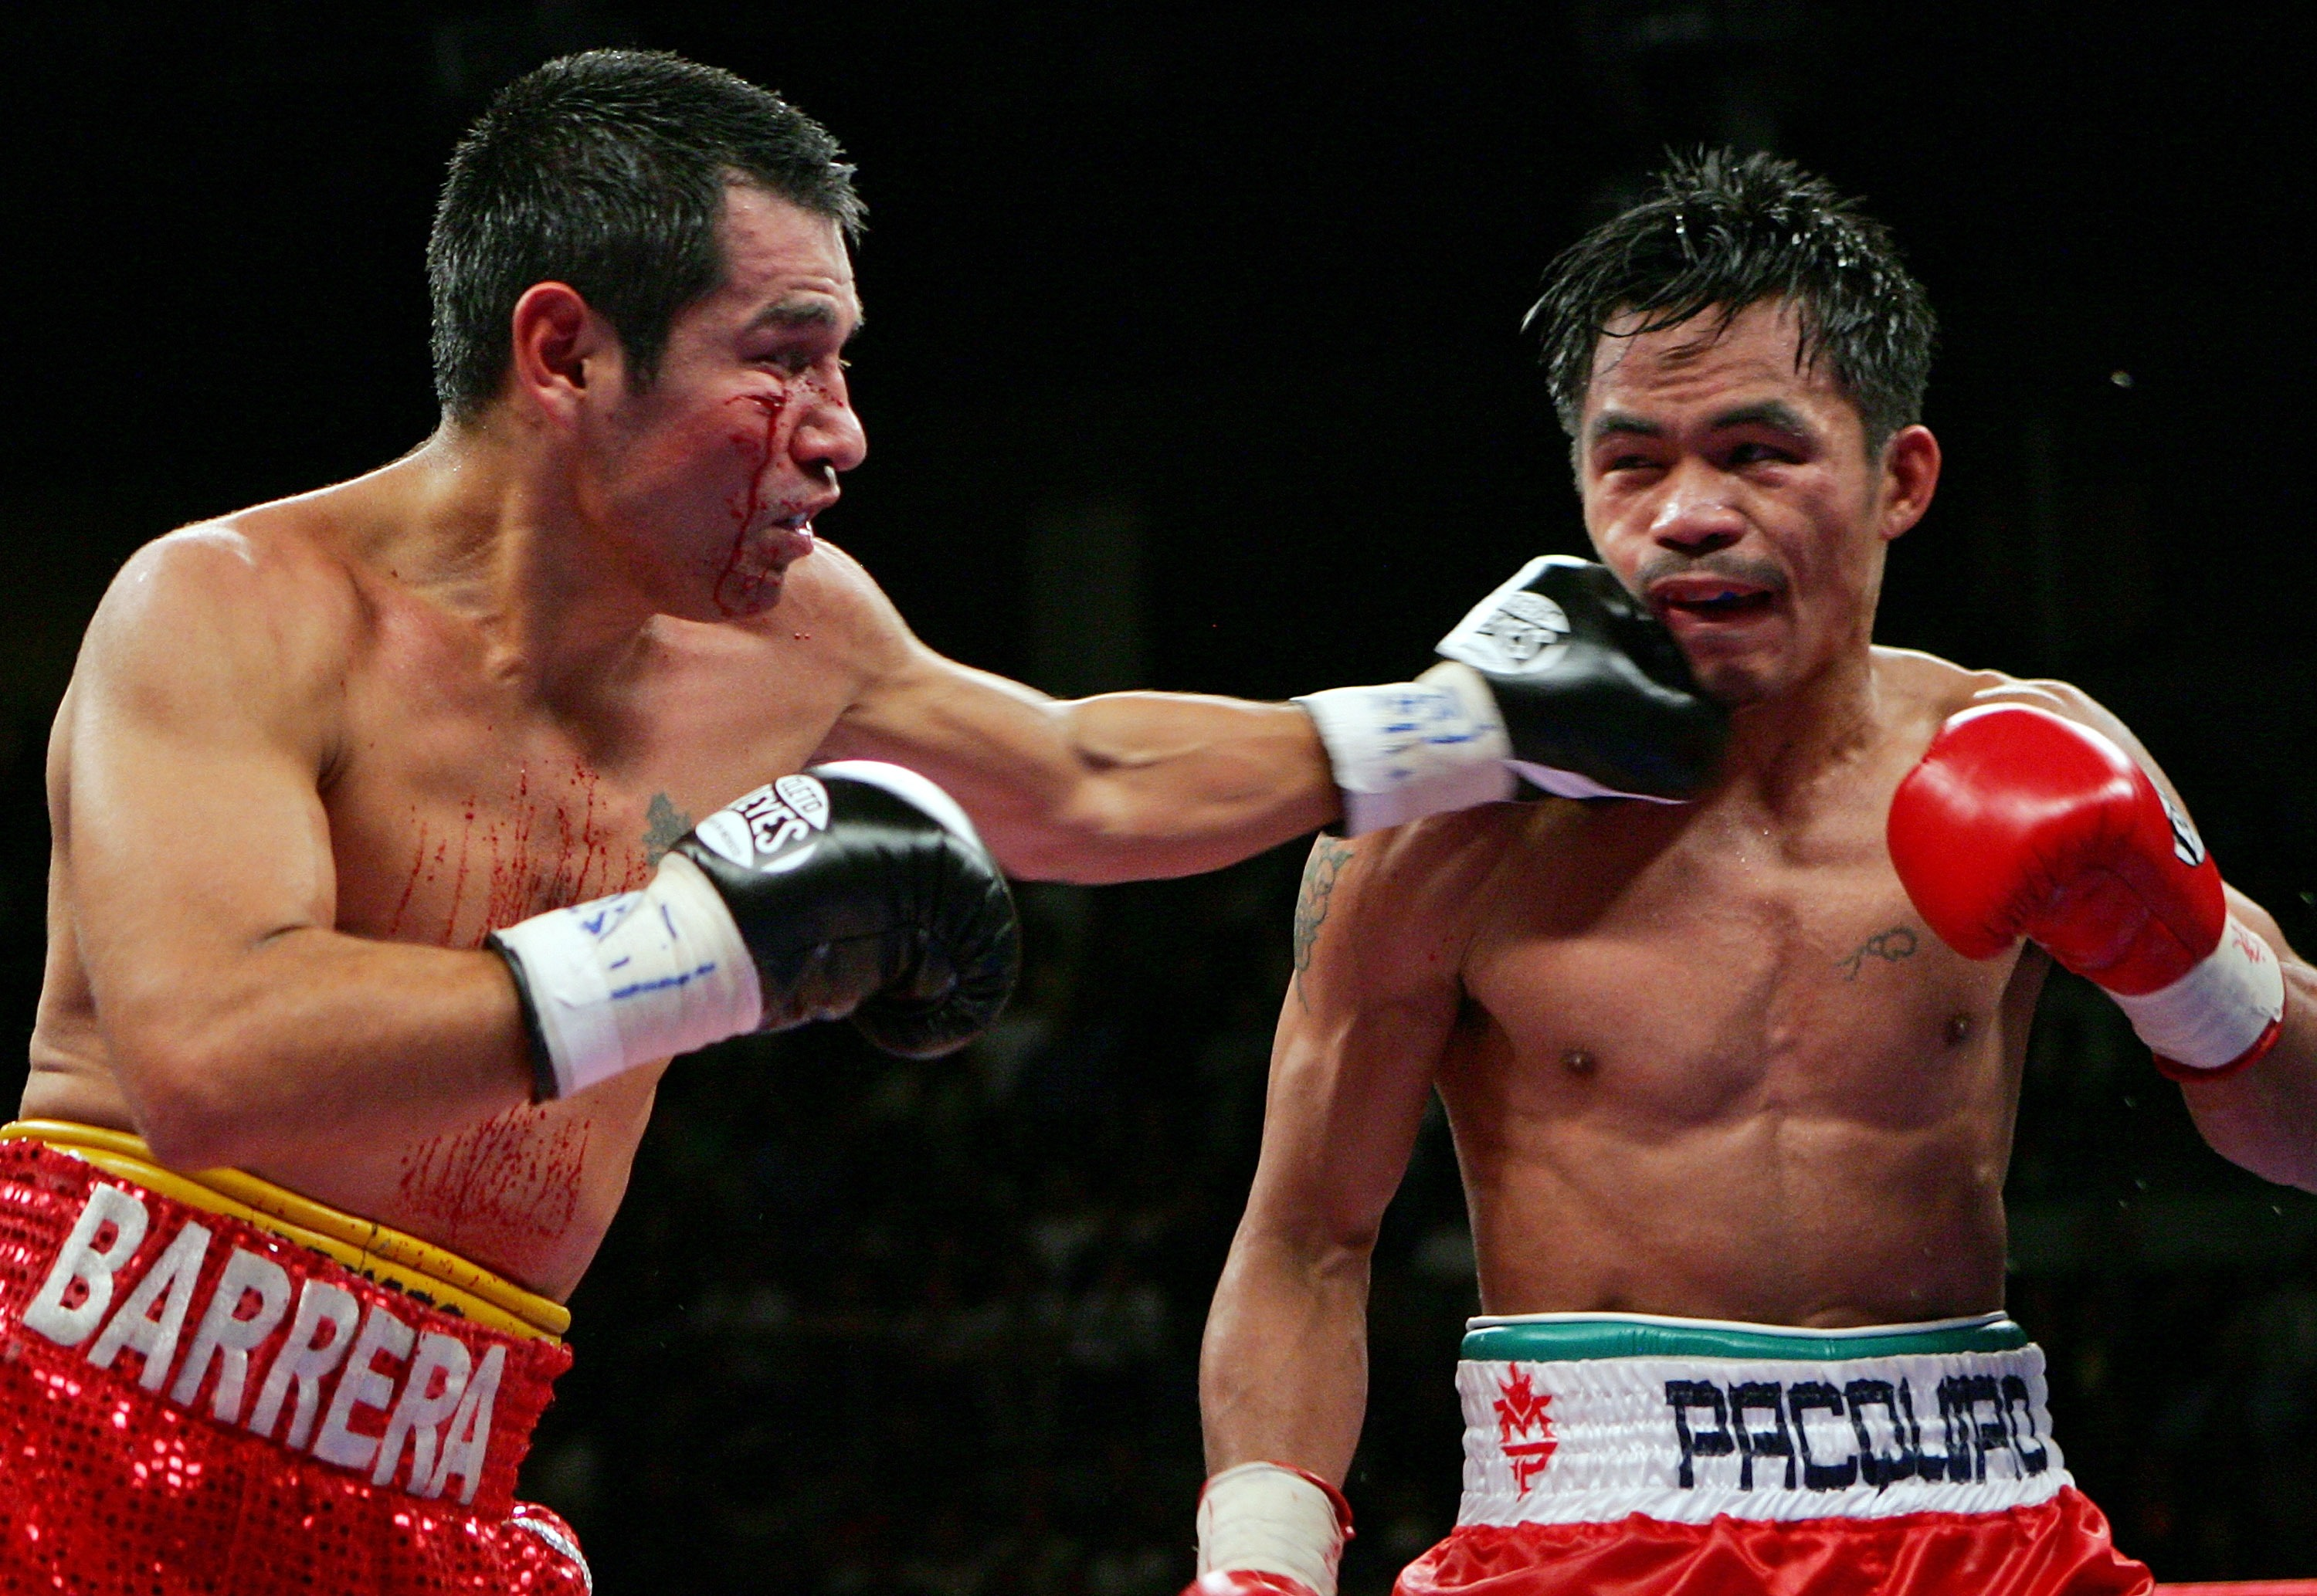 LAS VEGAS - OCTOBER 06:  Marco Antonio Barrera (L) hits Manny Pacquiao during the 11th round of their 12-round super featherweight bout at the Mandalay Bay Events Center October 6, 2007 in Las Vegas, Nevada. Pacquiao won by unanimous decision.  (Photo by